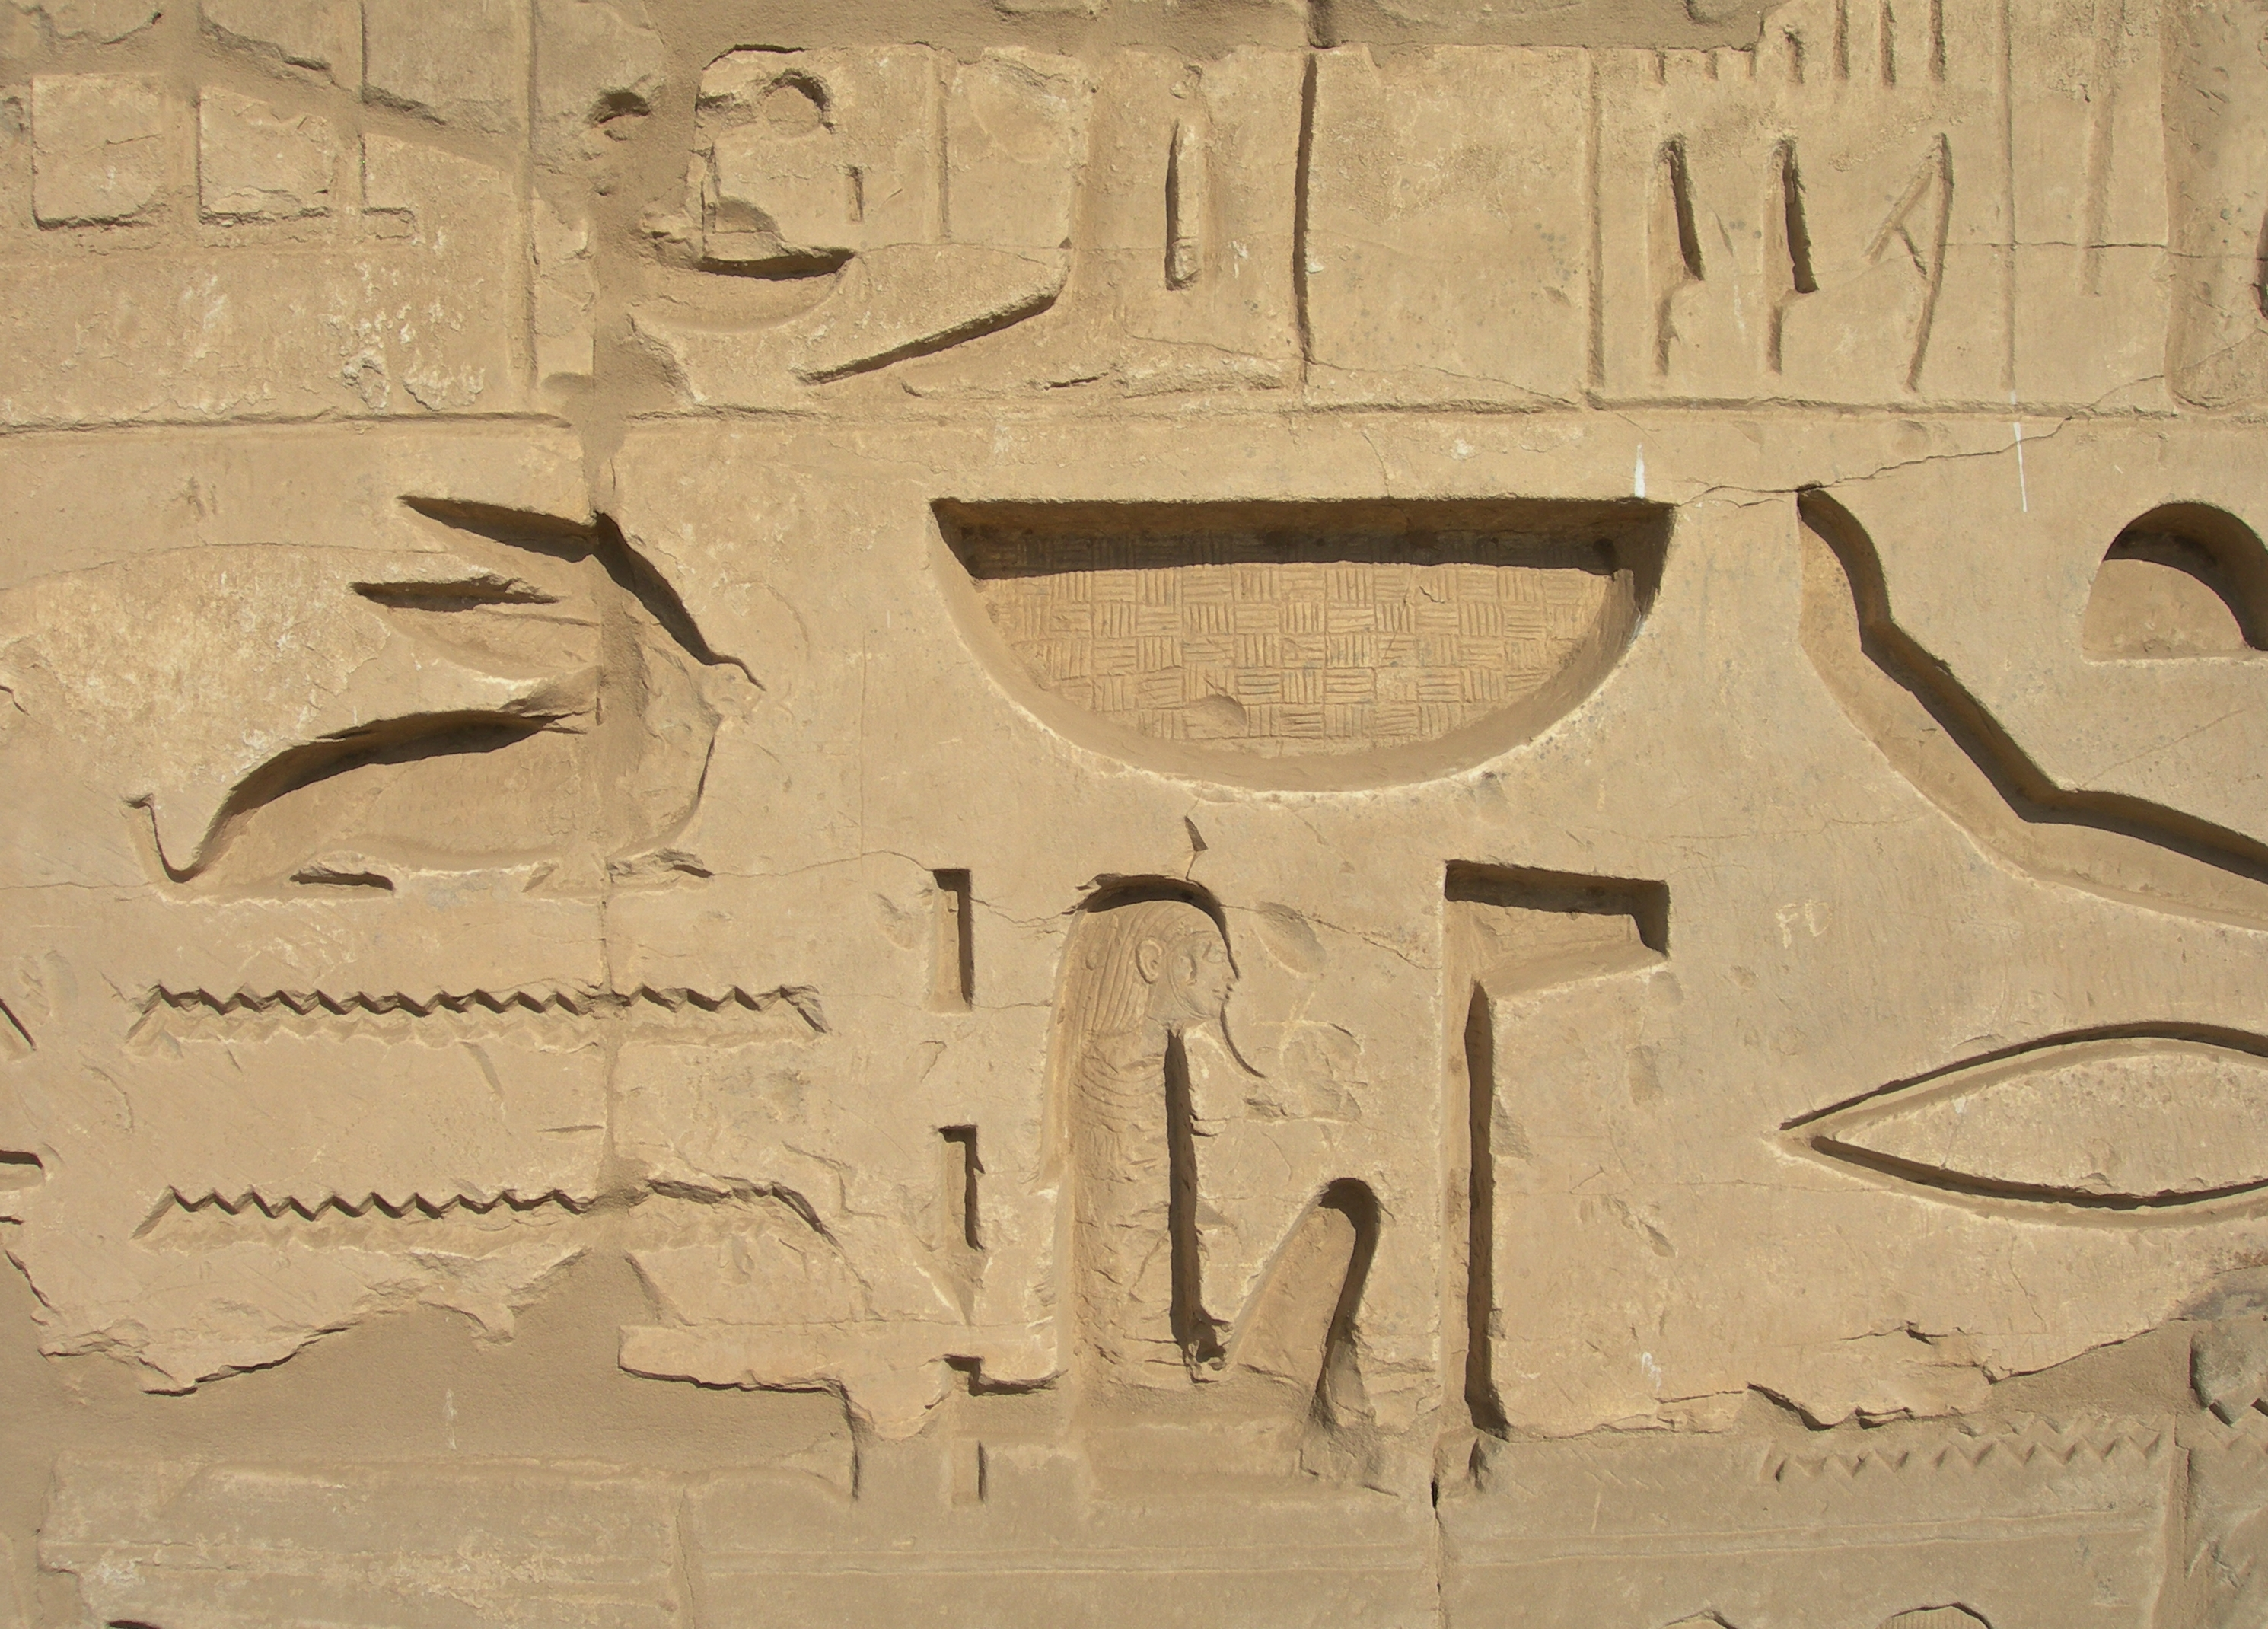 FIGURE 1. Egyptian hieroglyphs at Luxor. Note the weave-patterns carved into the round hieroglyph in the shape of a basket.